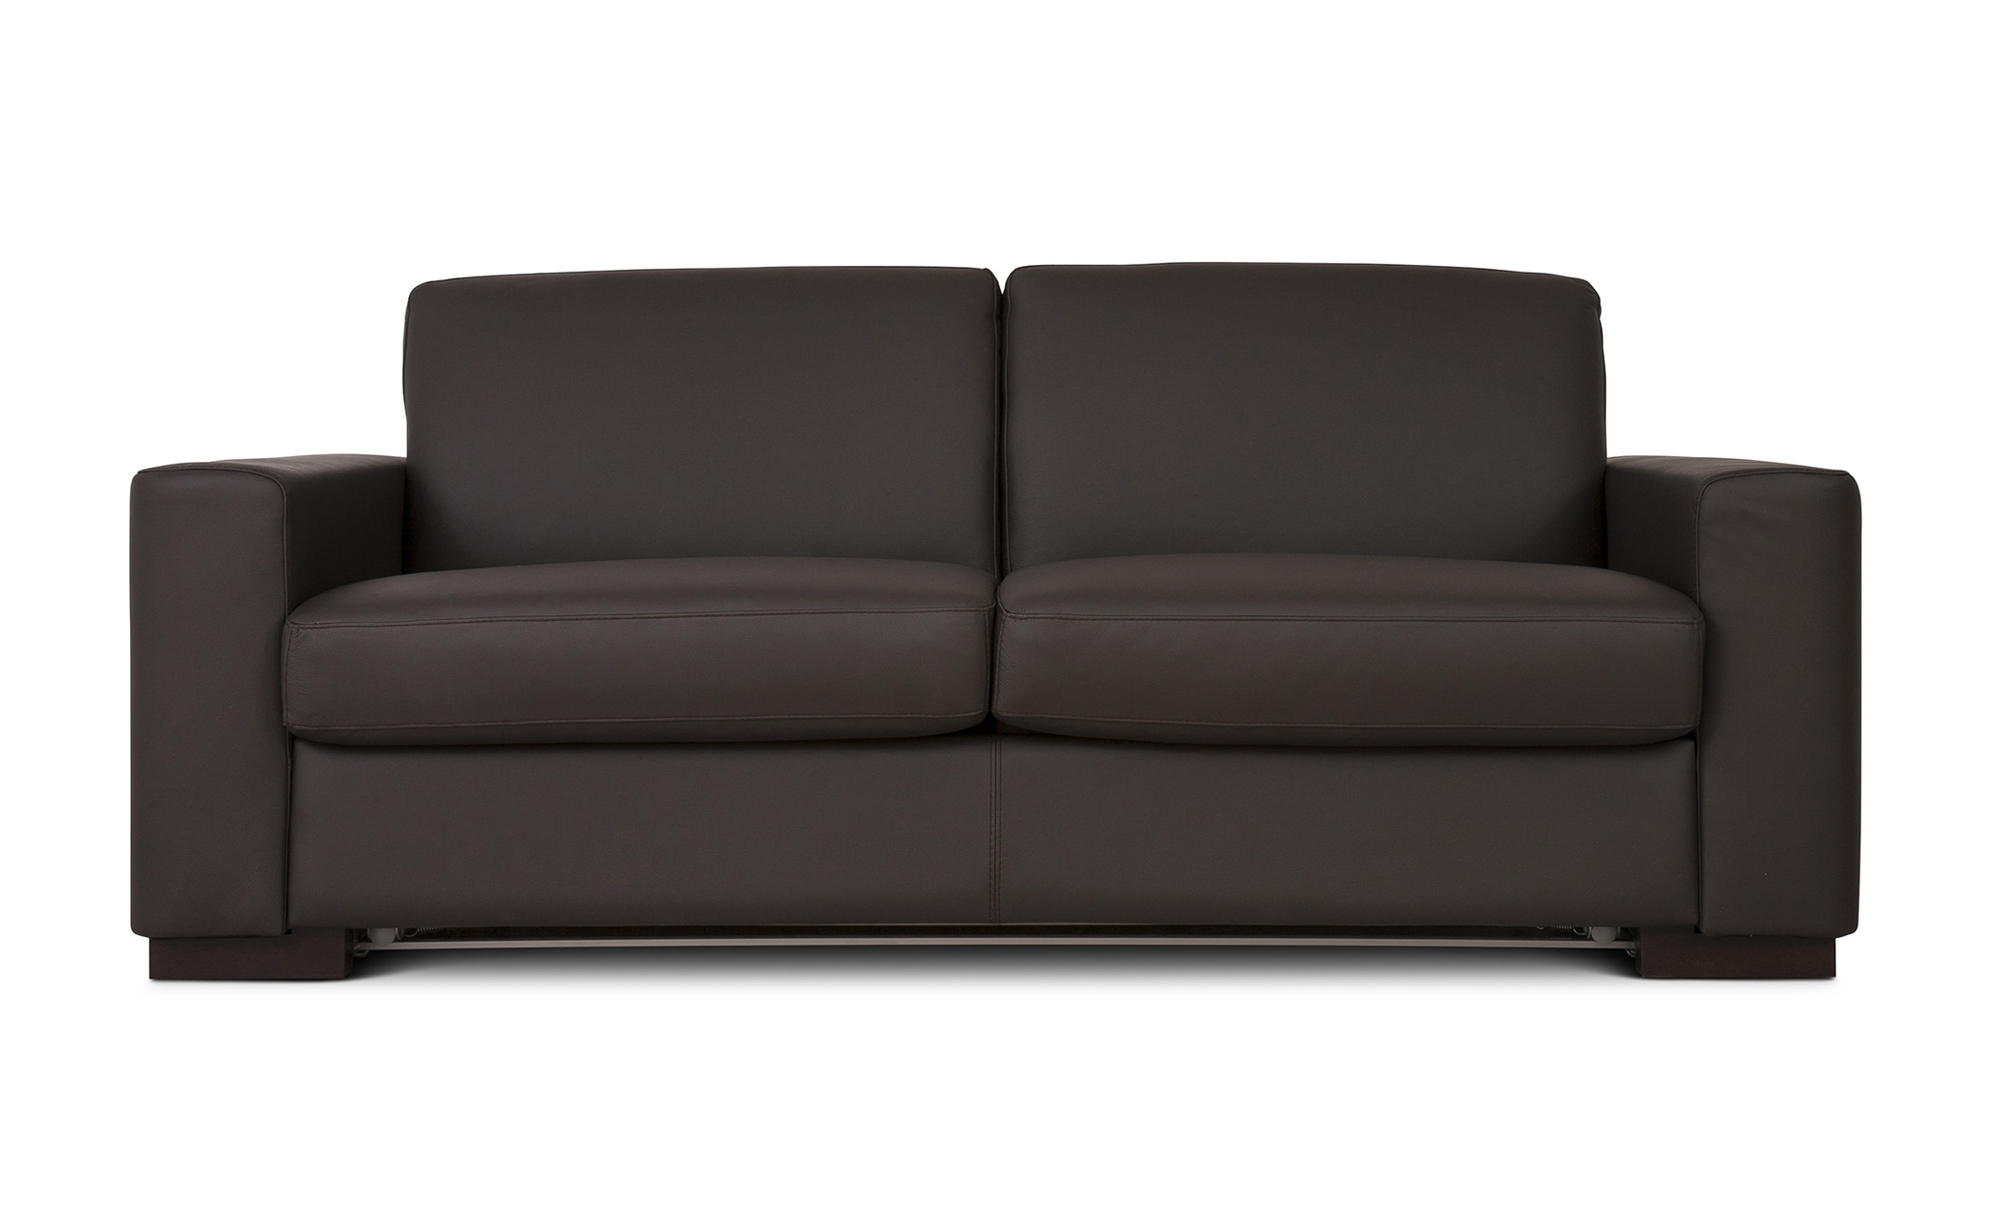 Sofa Beds and Chaises Fanuli Furniture